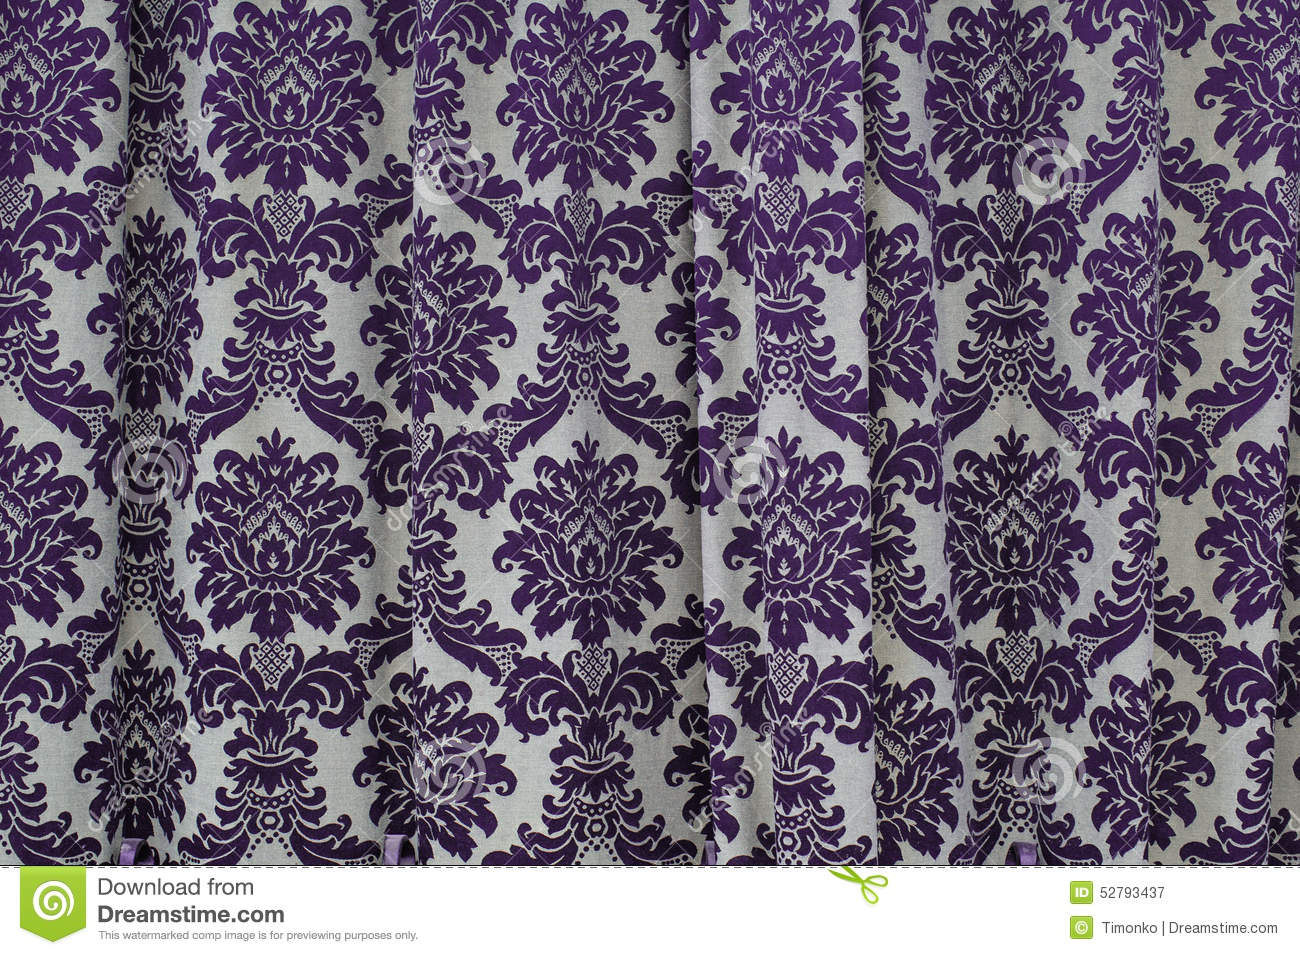 Curtains texture - Beautiful Fabric Texture Curtains With Vintage Pattern